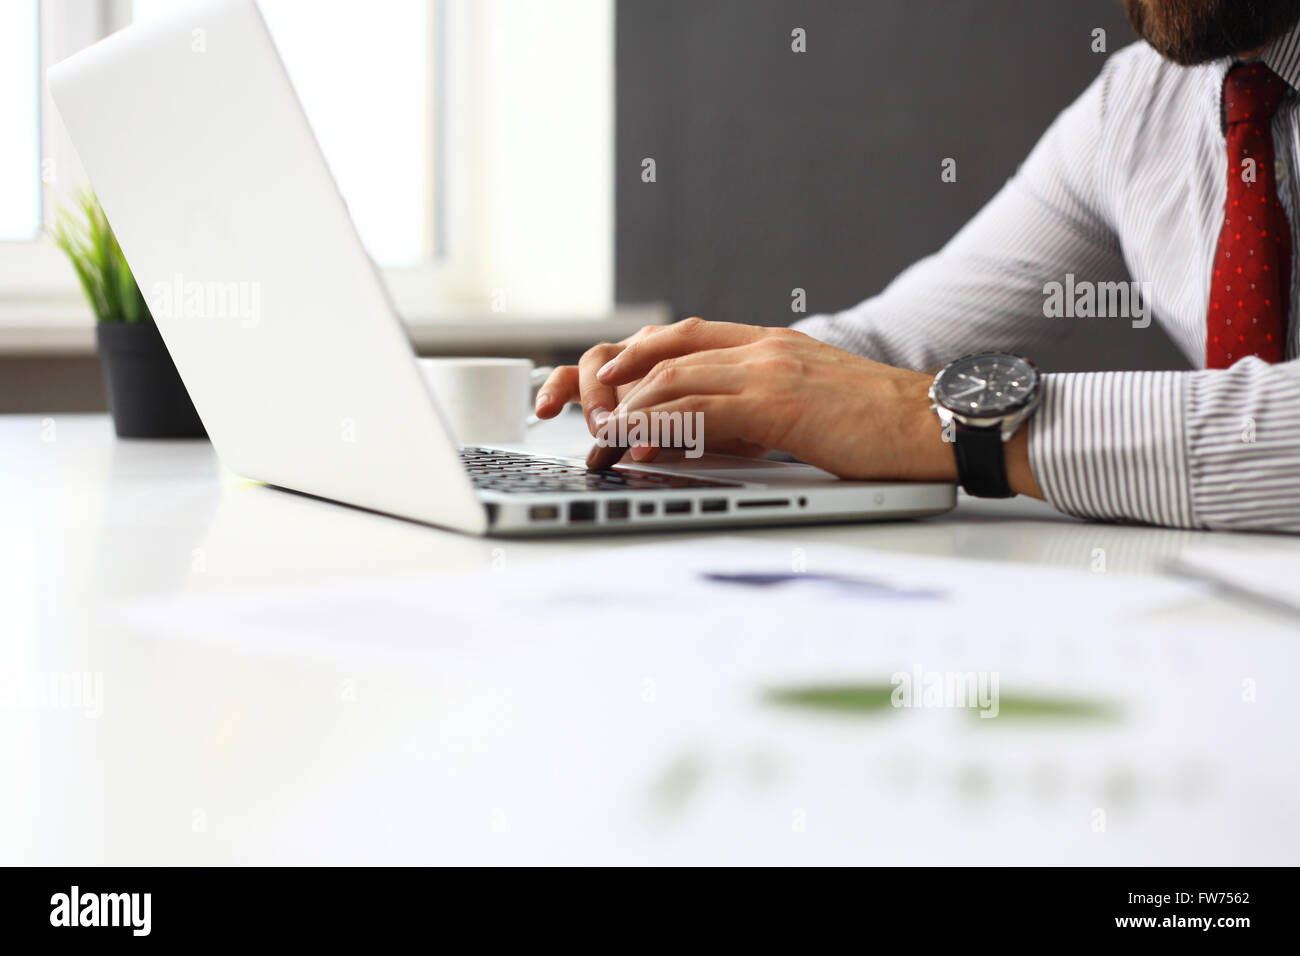 businessman typing on keyboard - Stock Image